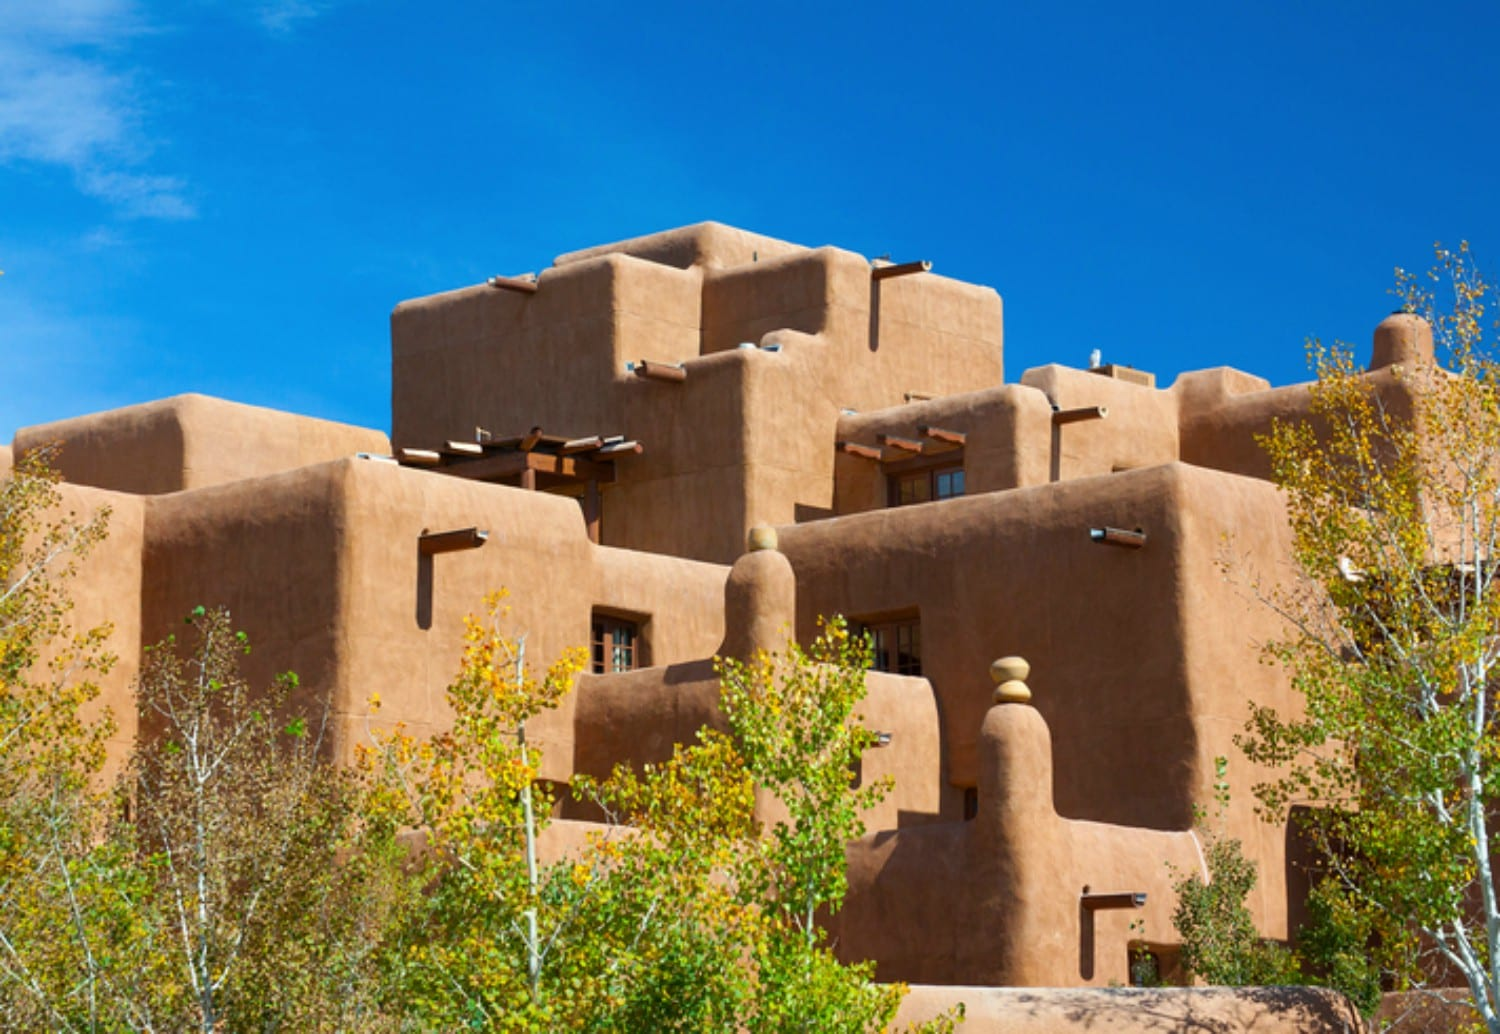 Free Things to Do in Santa Fe